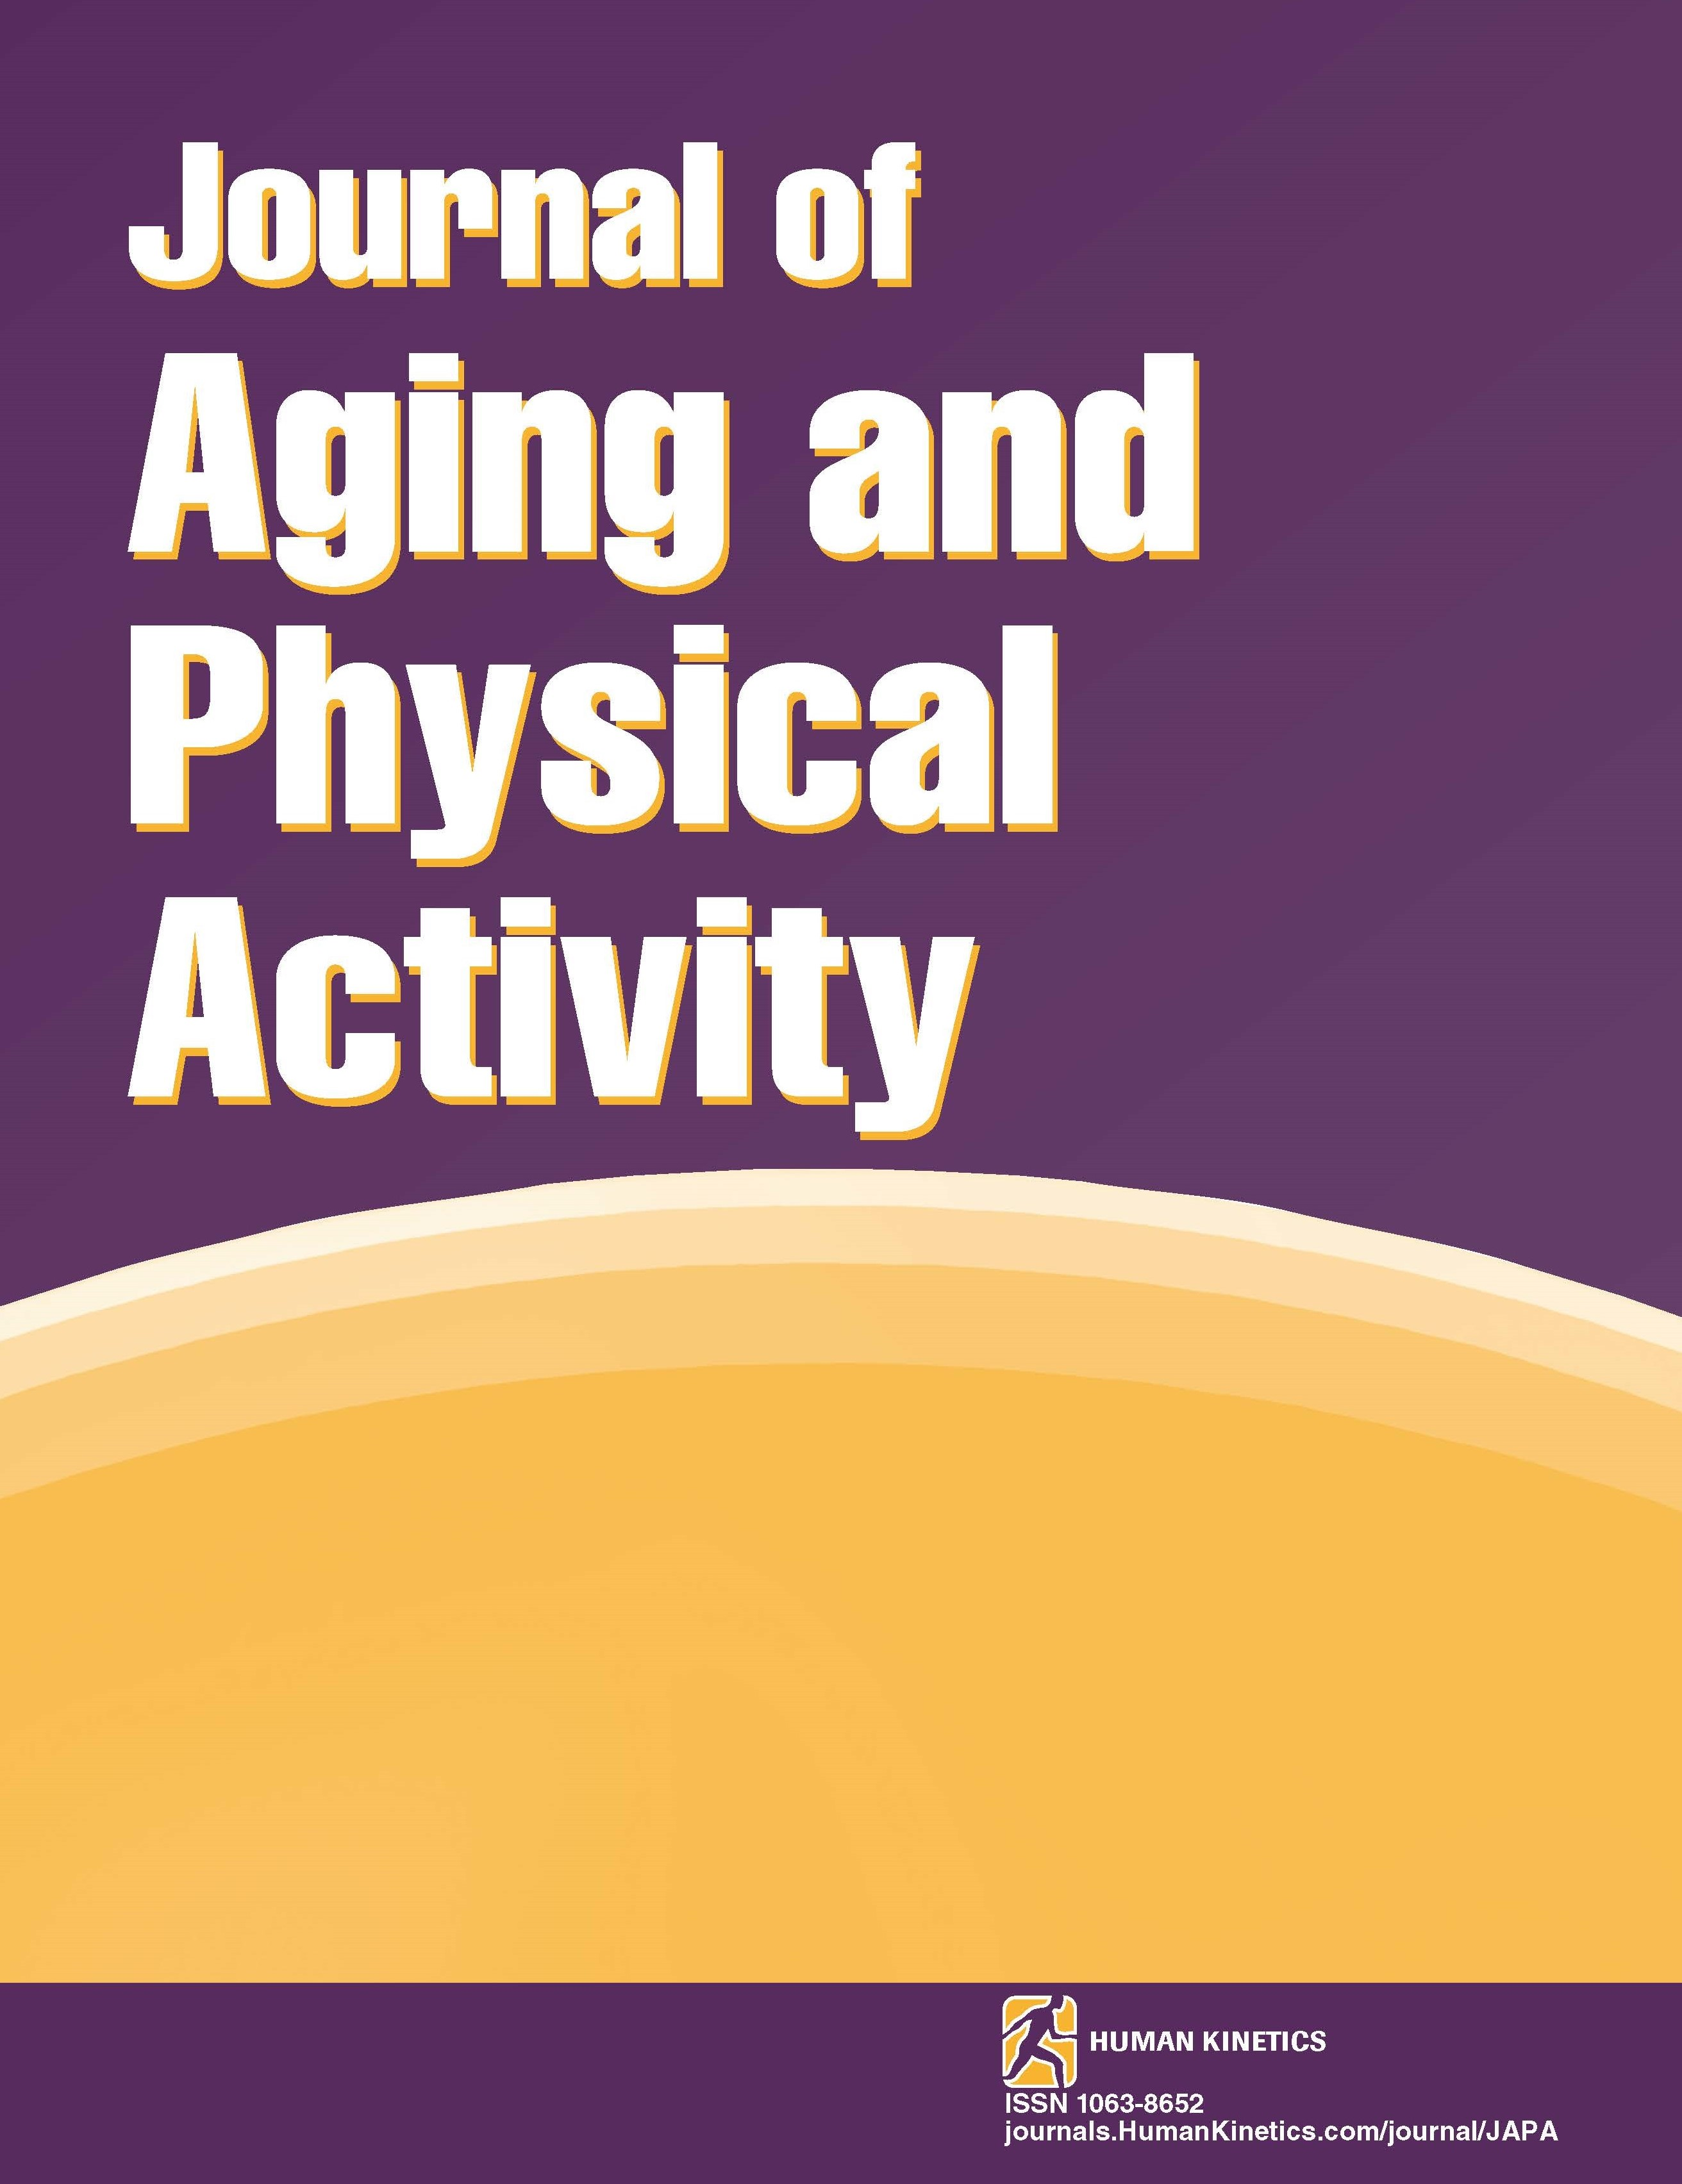 Journal of Aging and Physical Activity